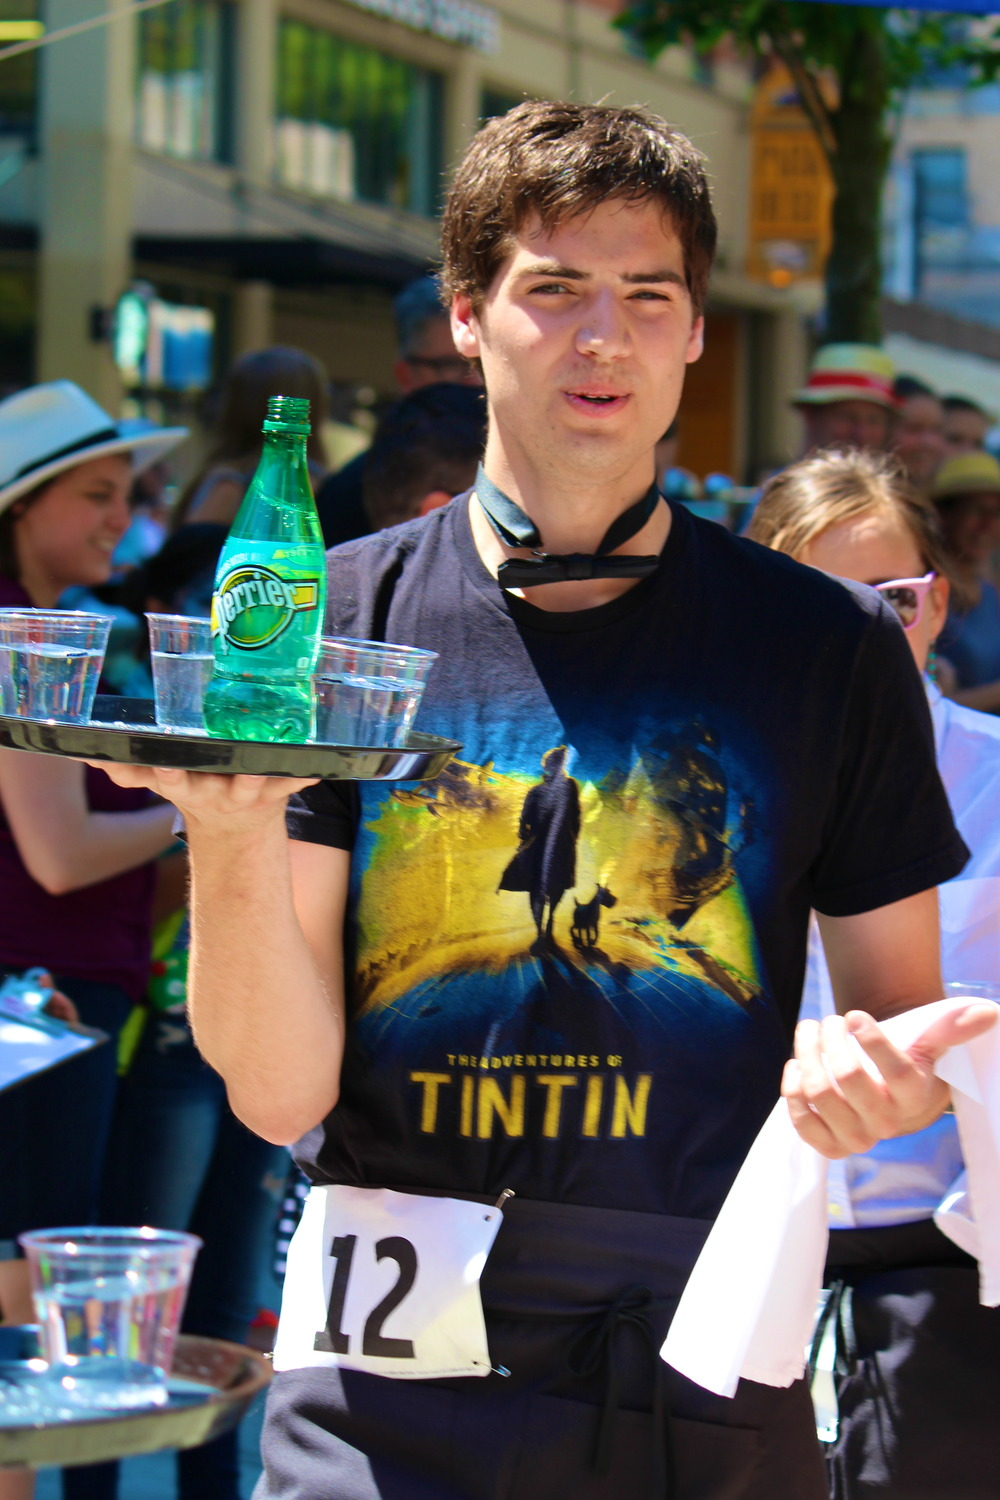 Thomas Geulin left his post at the St. Honoré booth to participate in the waiter's race